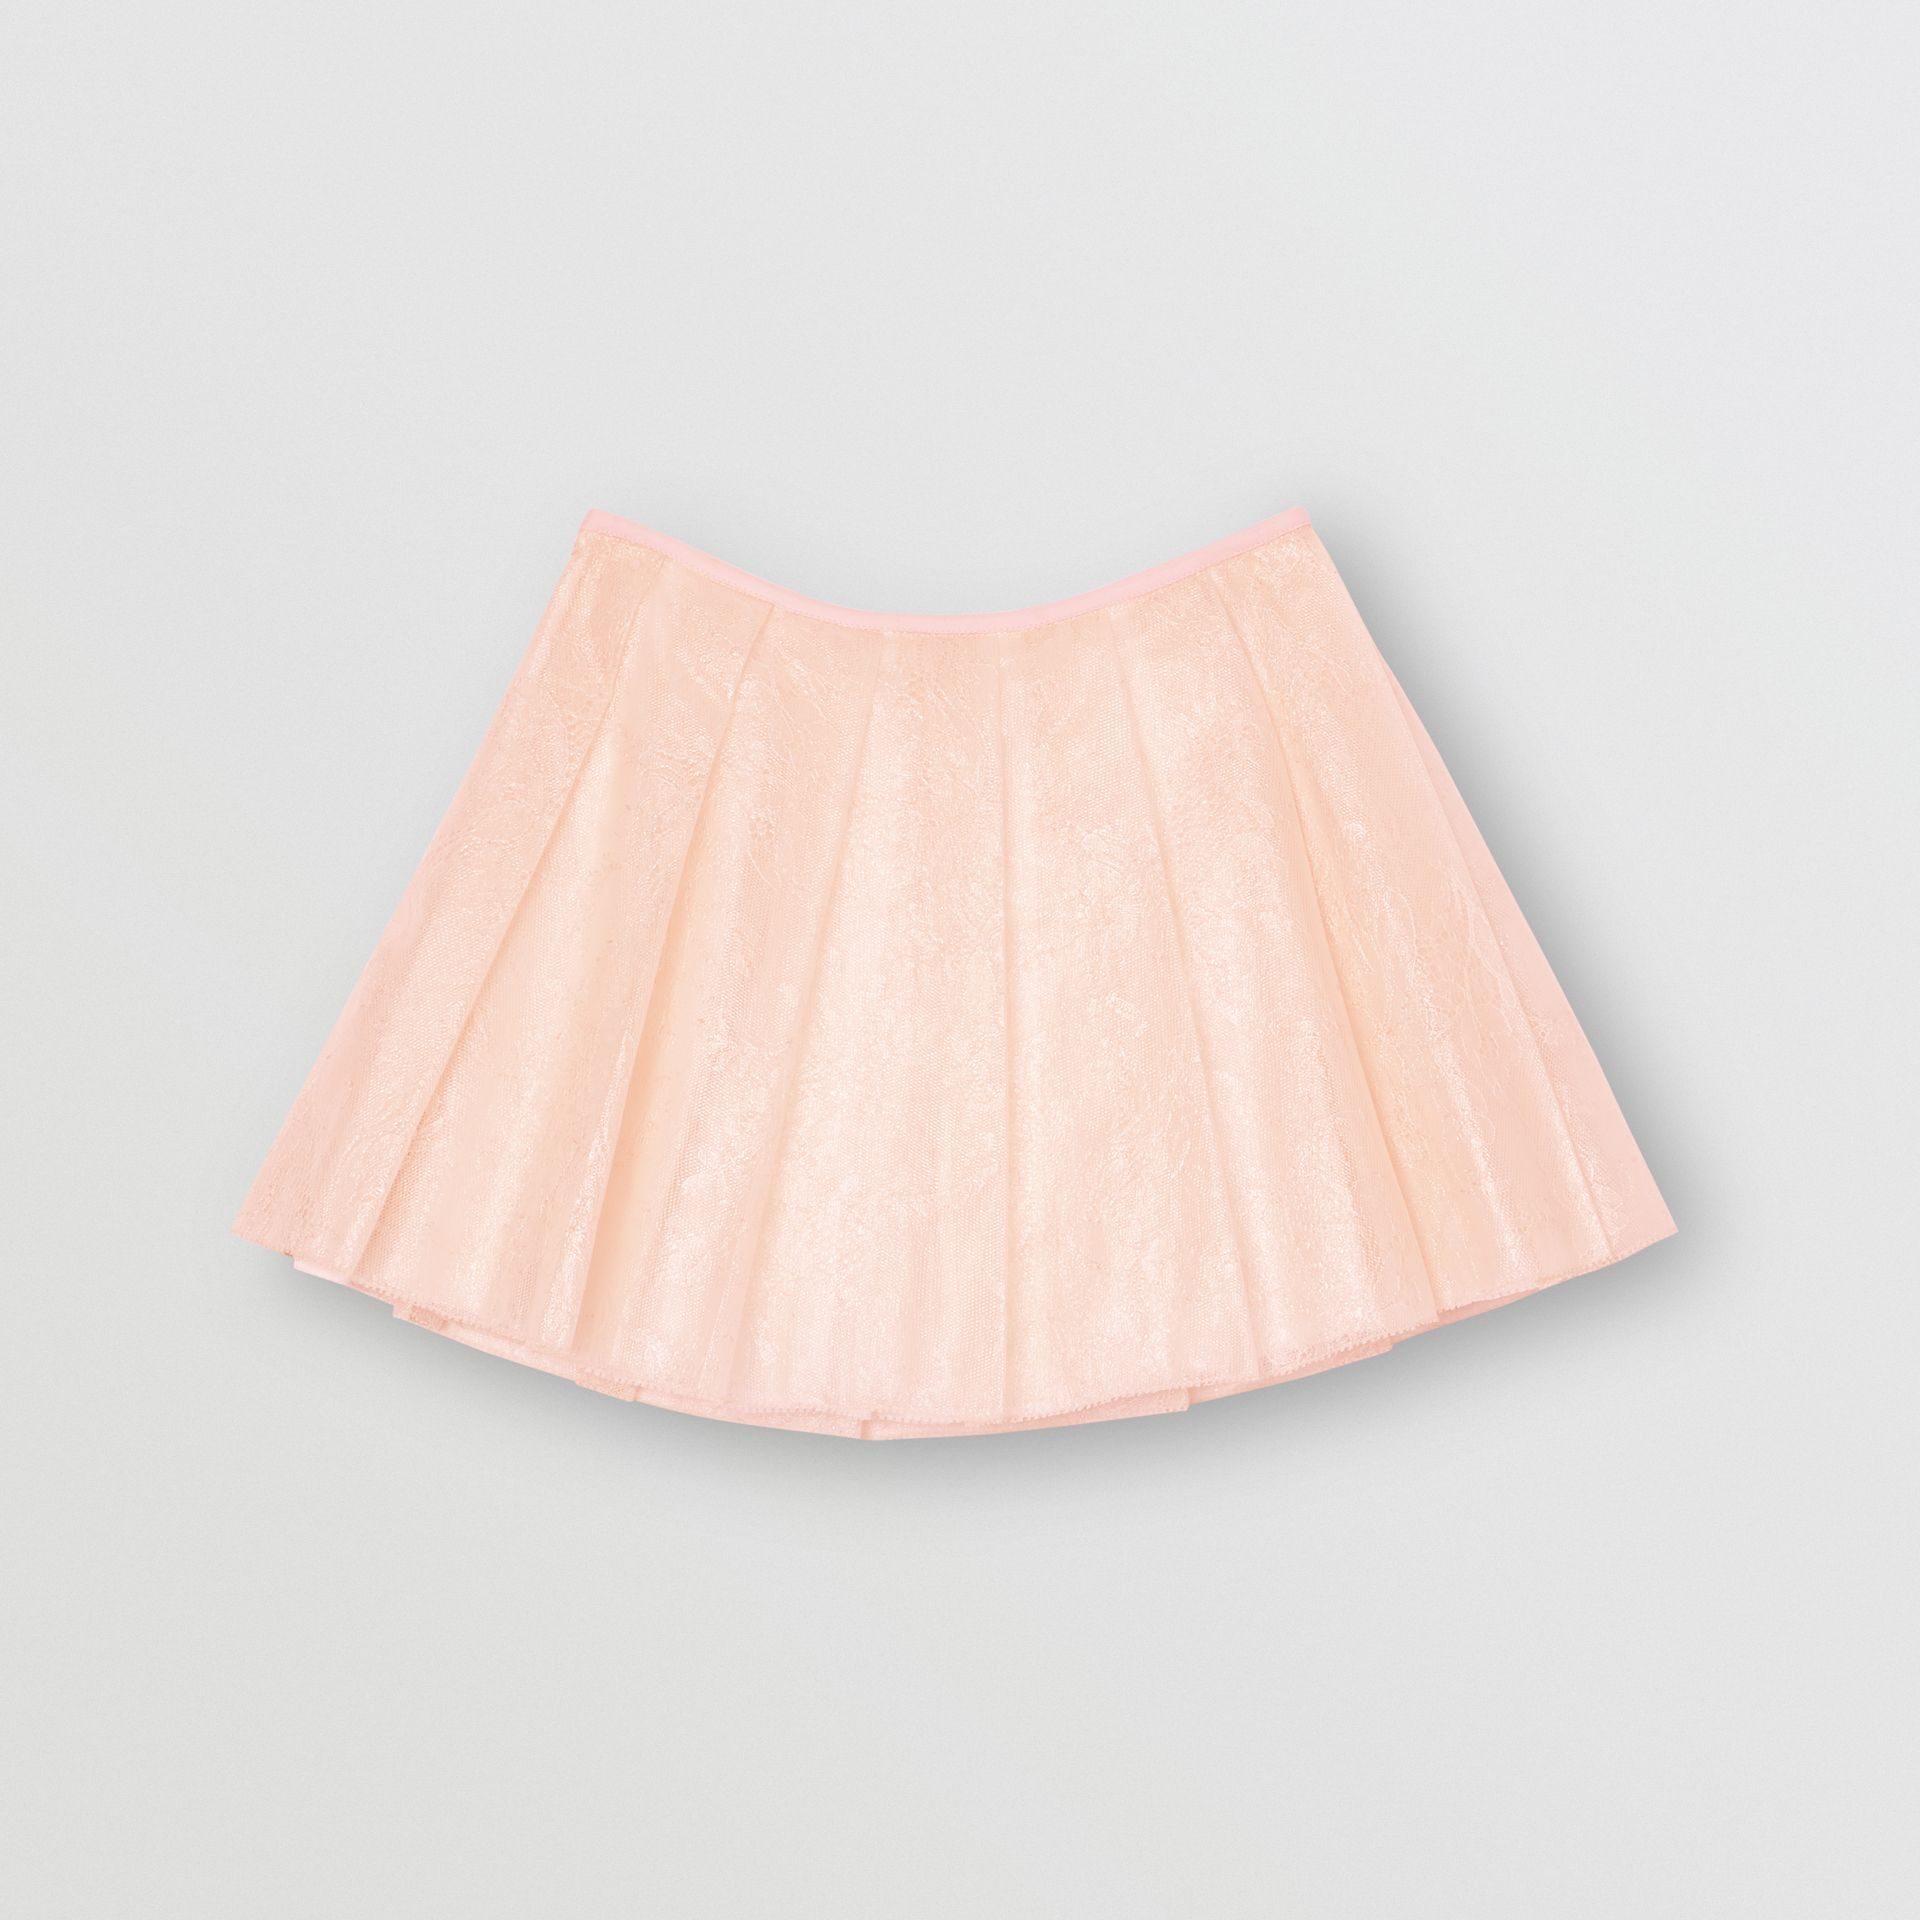 Pleated Laminated Lace Skirt in Pale Pink | Burberry - gallery image 3